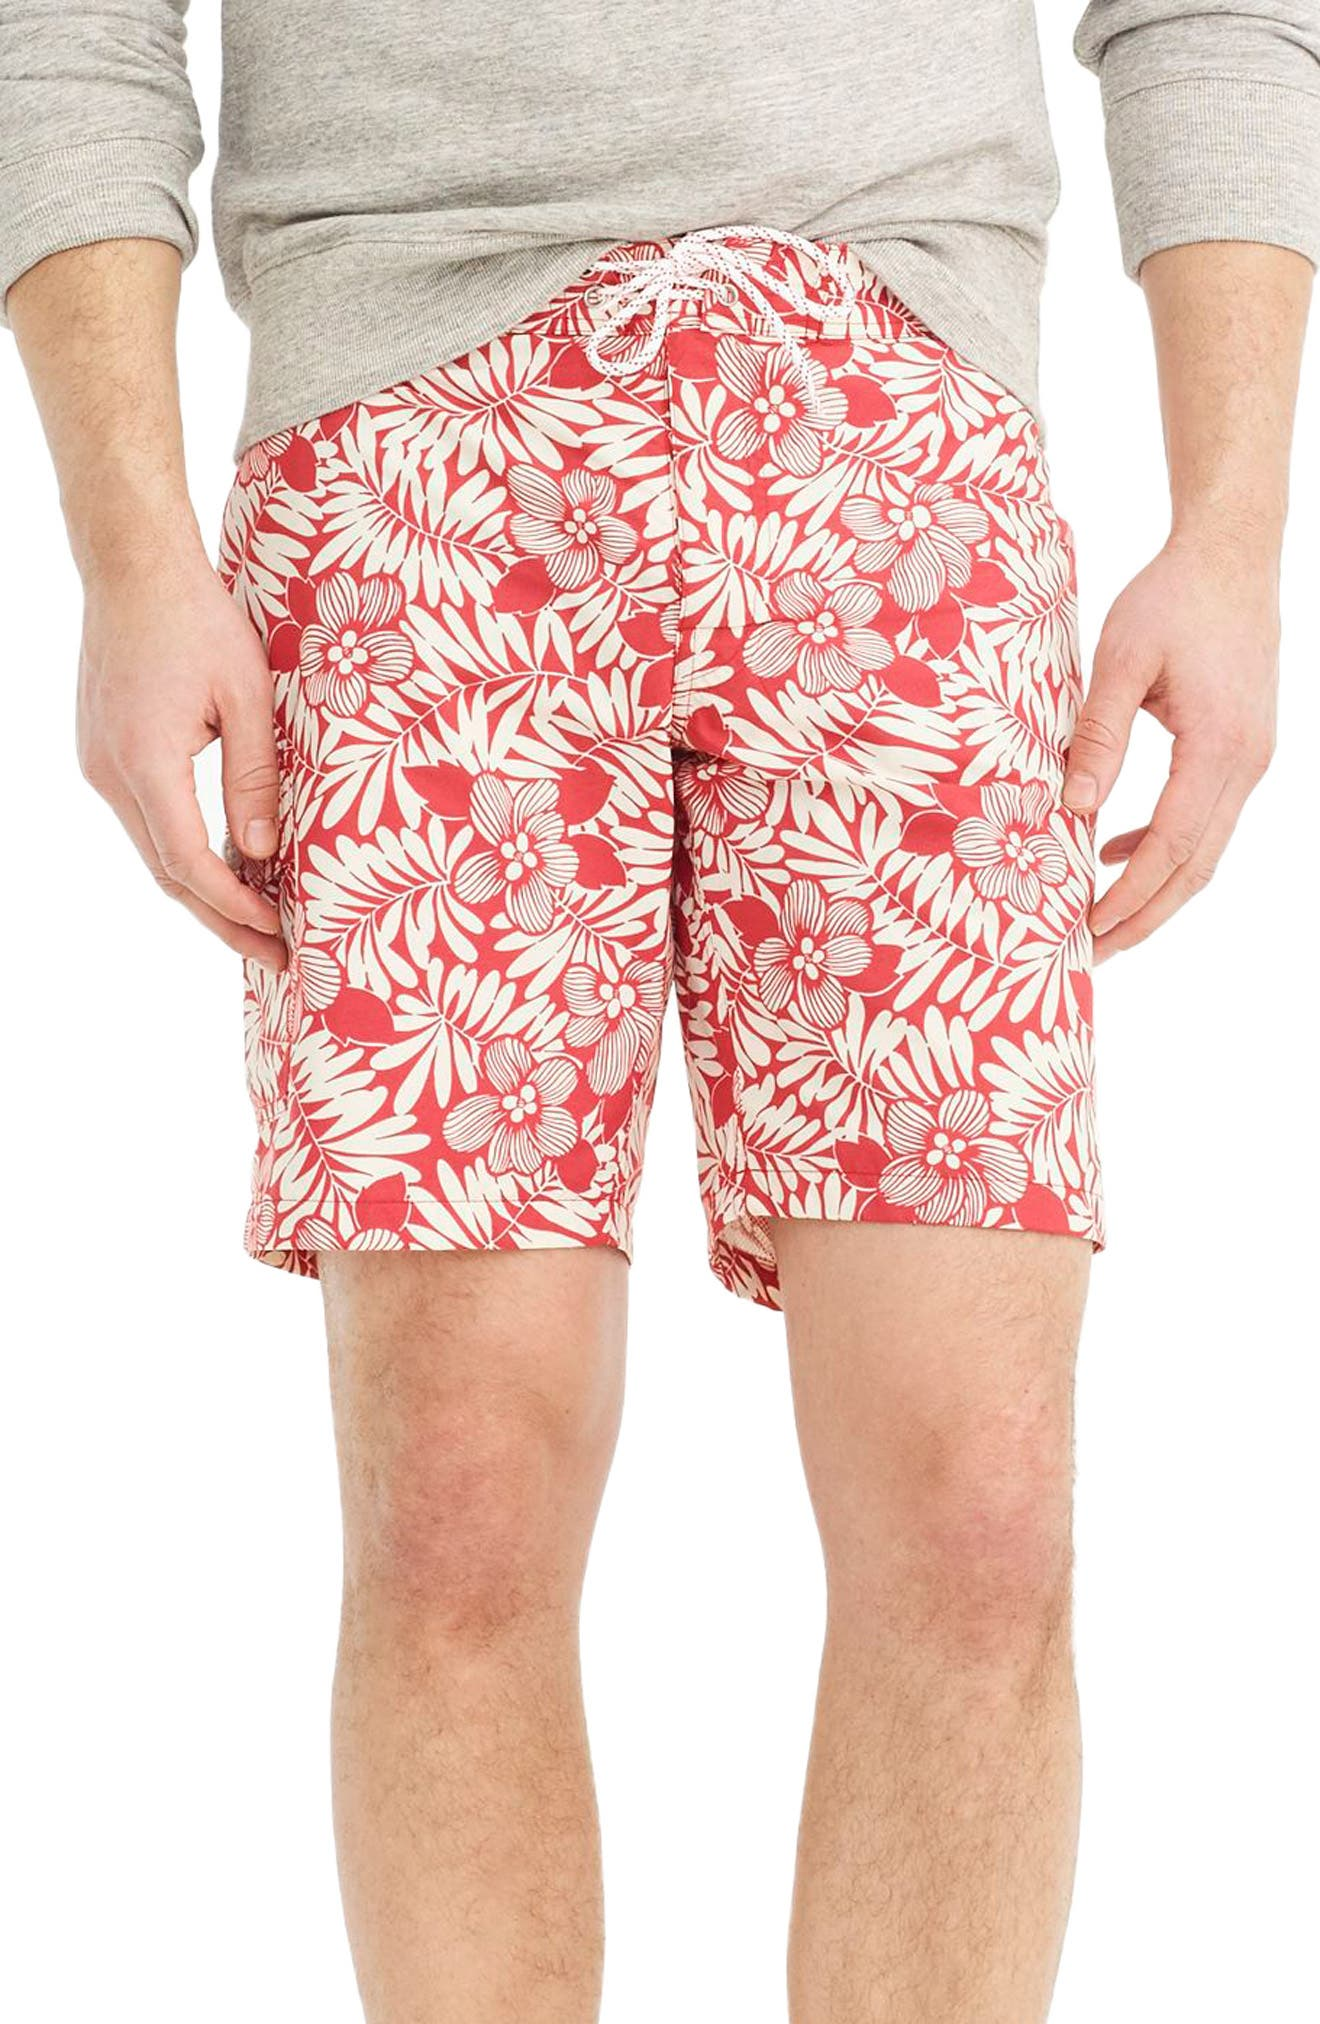 J.Crew Fern Print Board Shorts,                         Main,                         color, Red Ivory